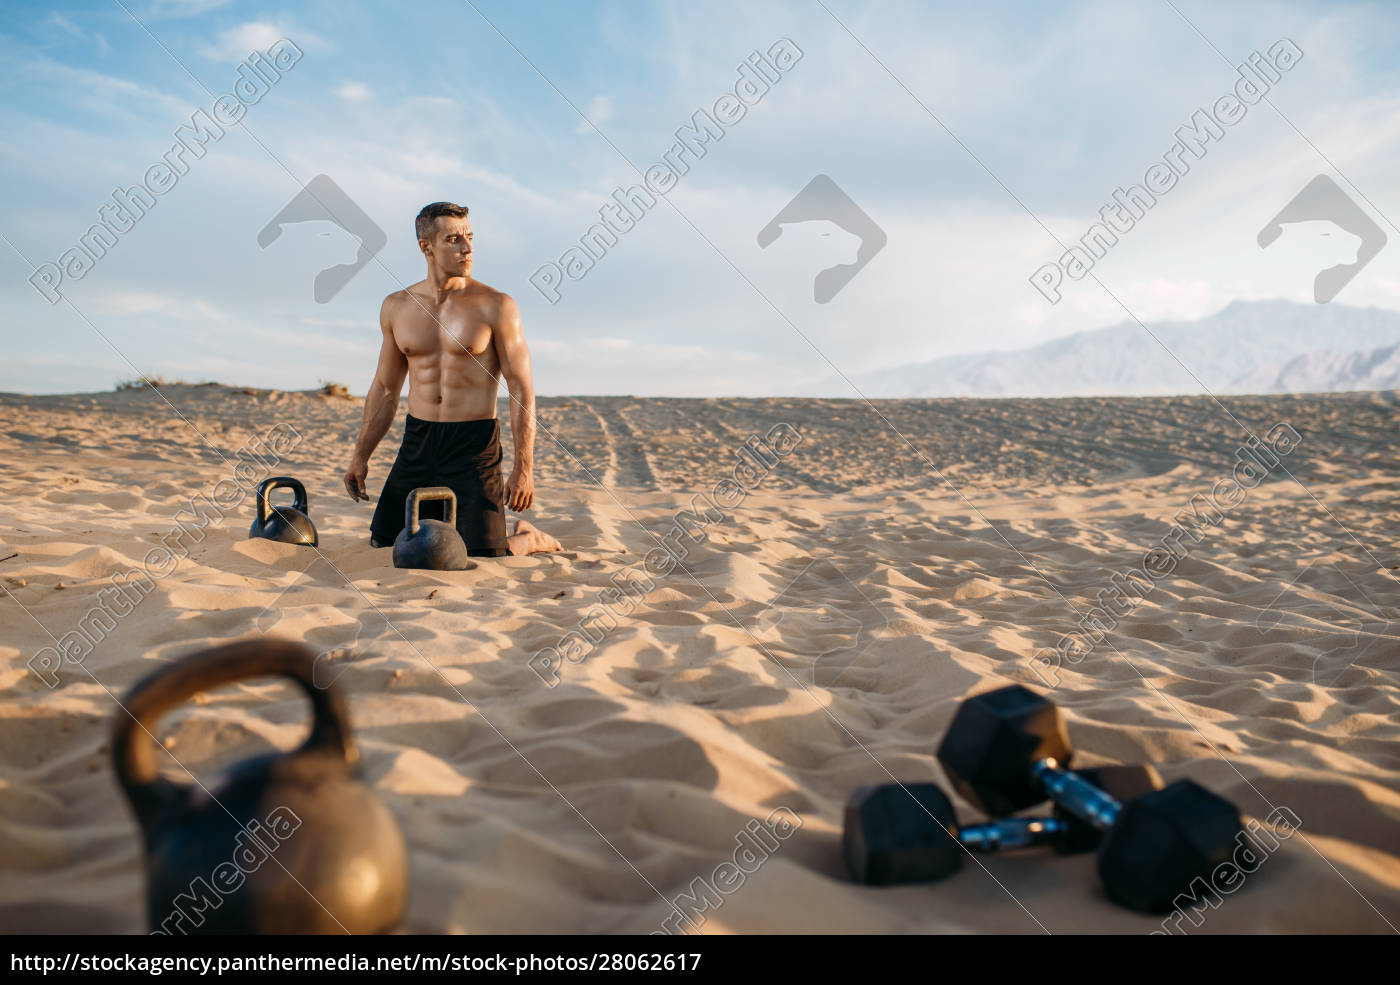 male, athlete, after, workout, in, desert - 28062617